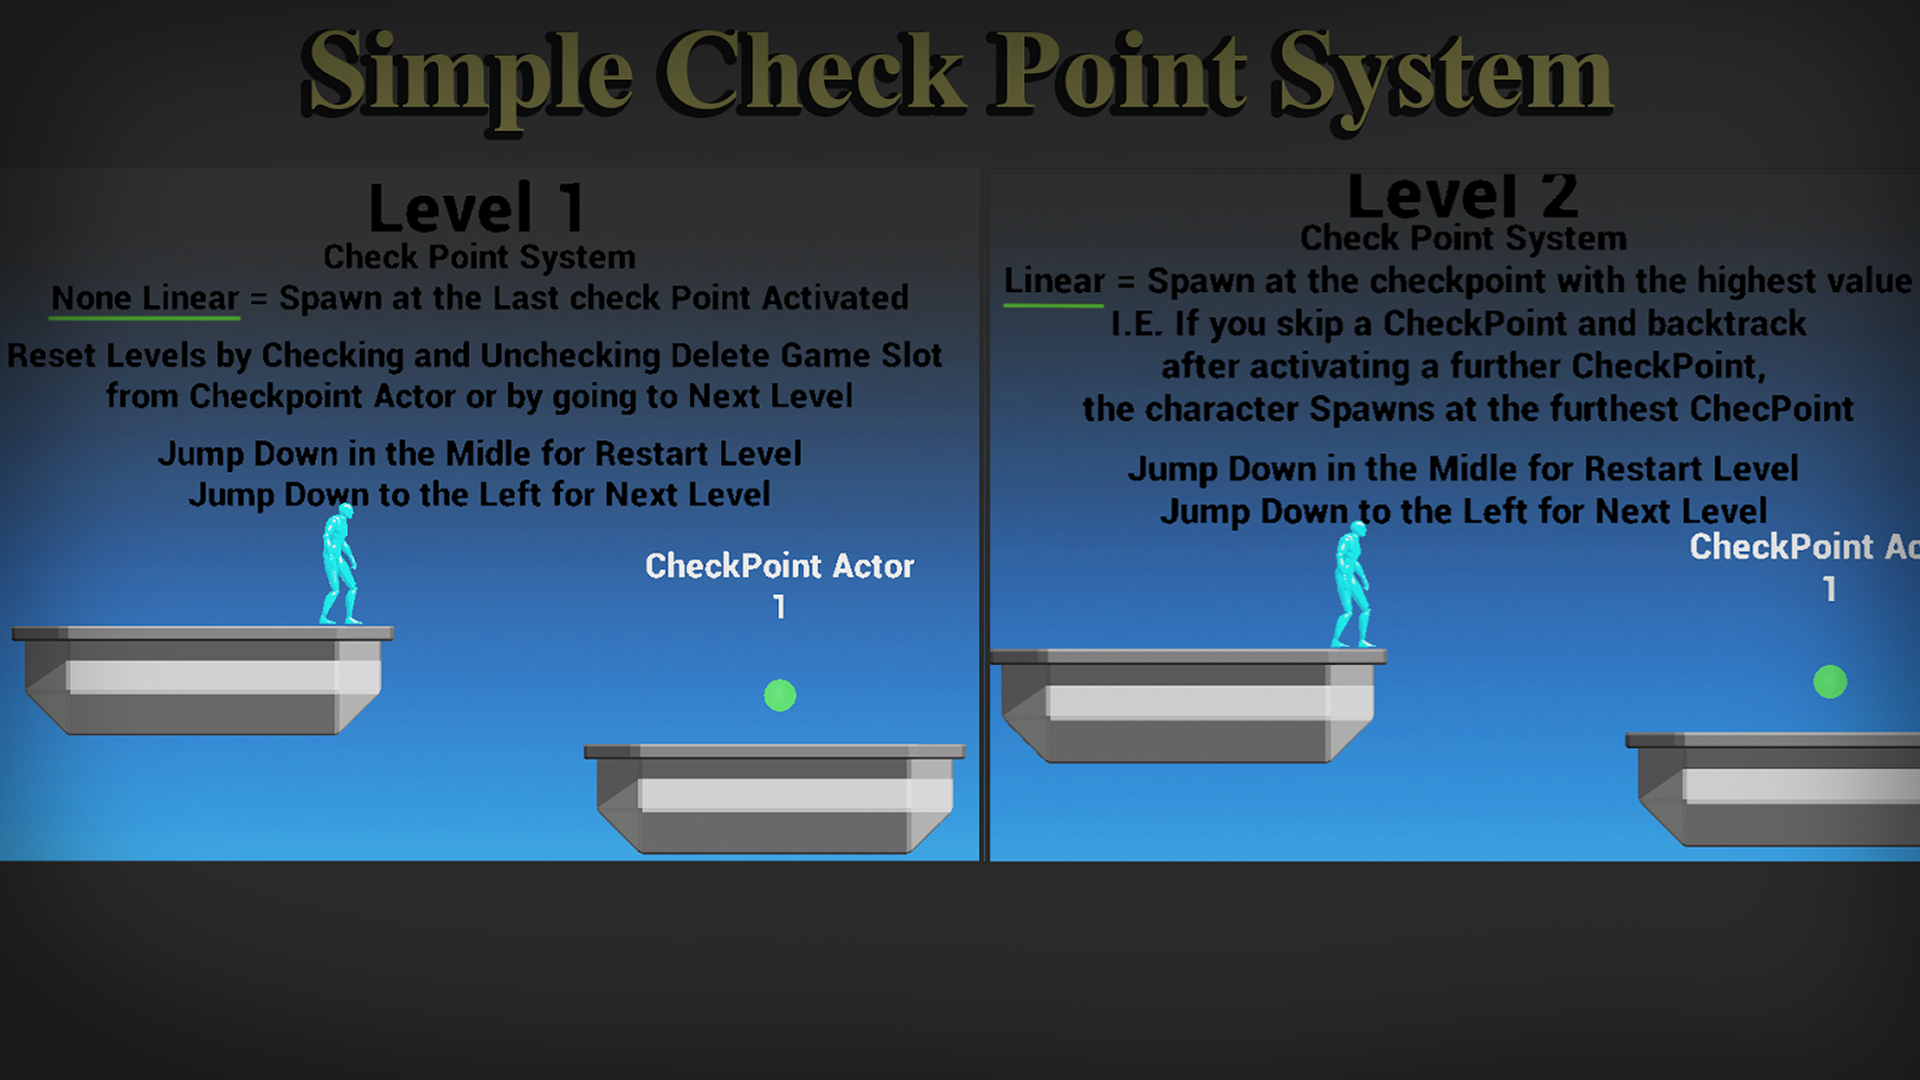 Simple CheckPoint System (Game Perspectives)